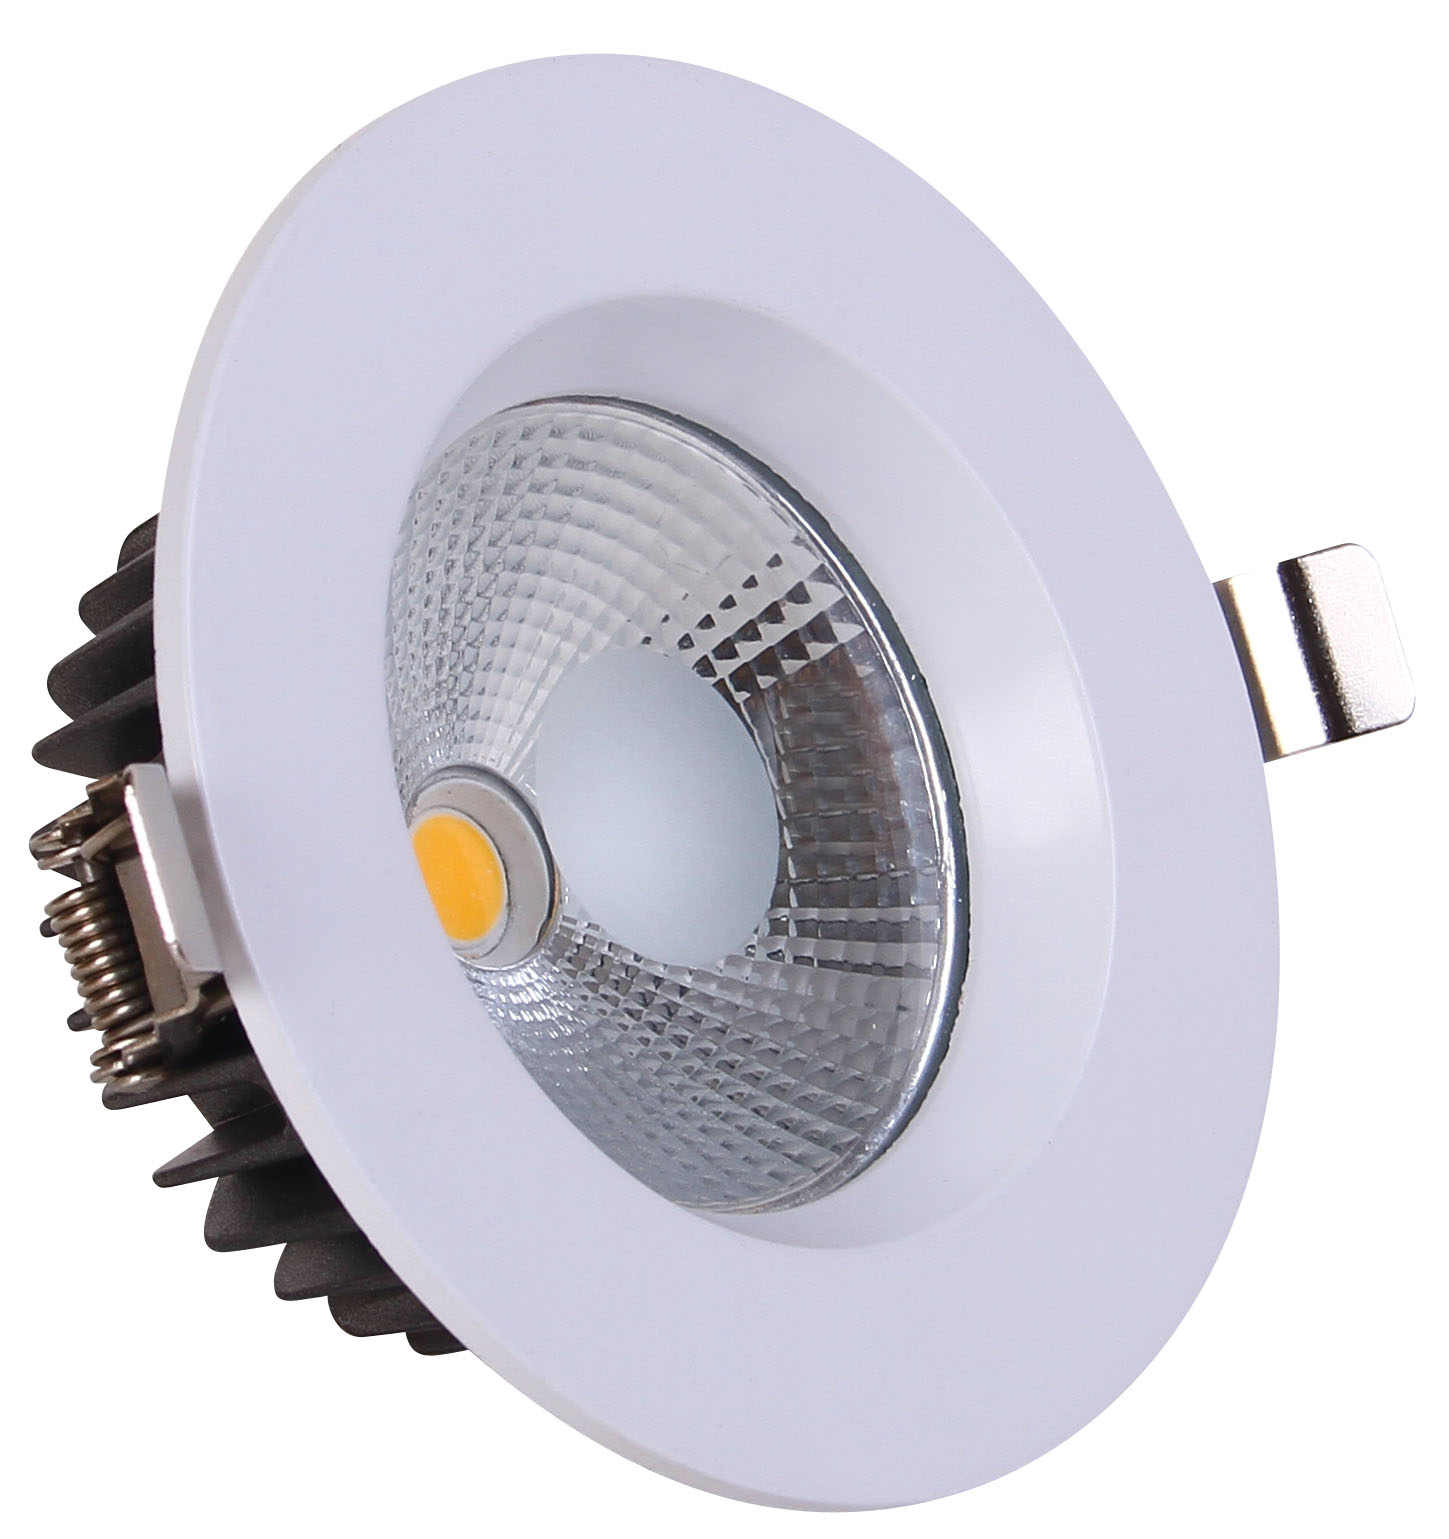 130mm Cut-out COB 20W LED Downlight